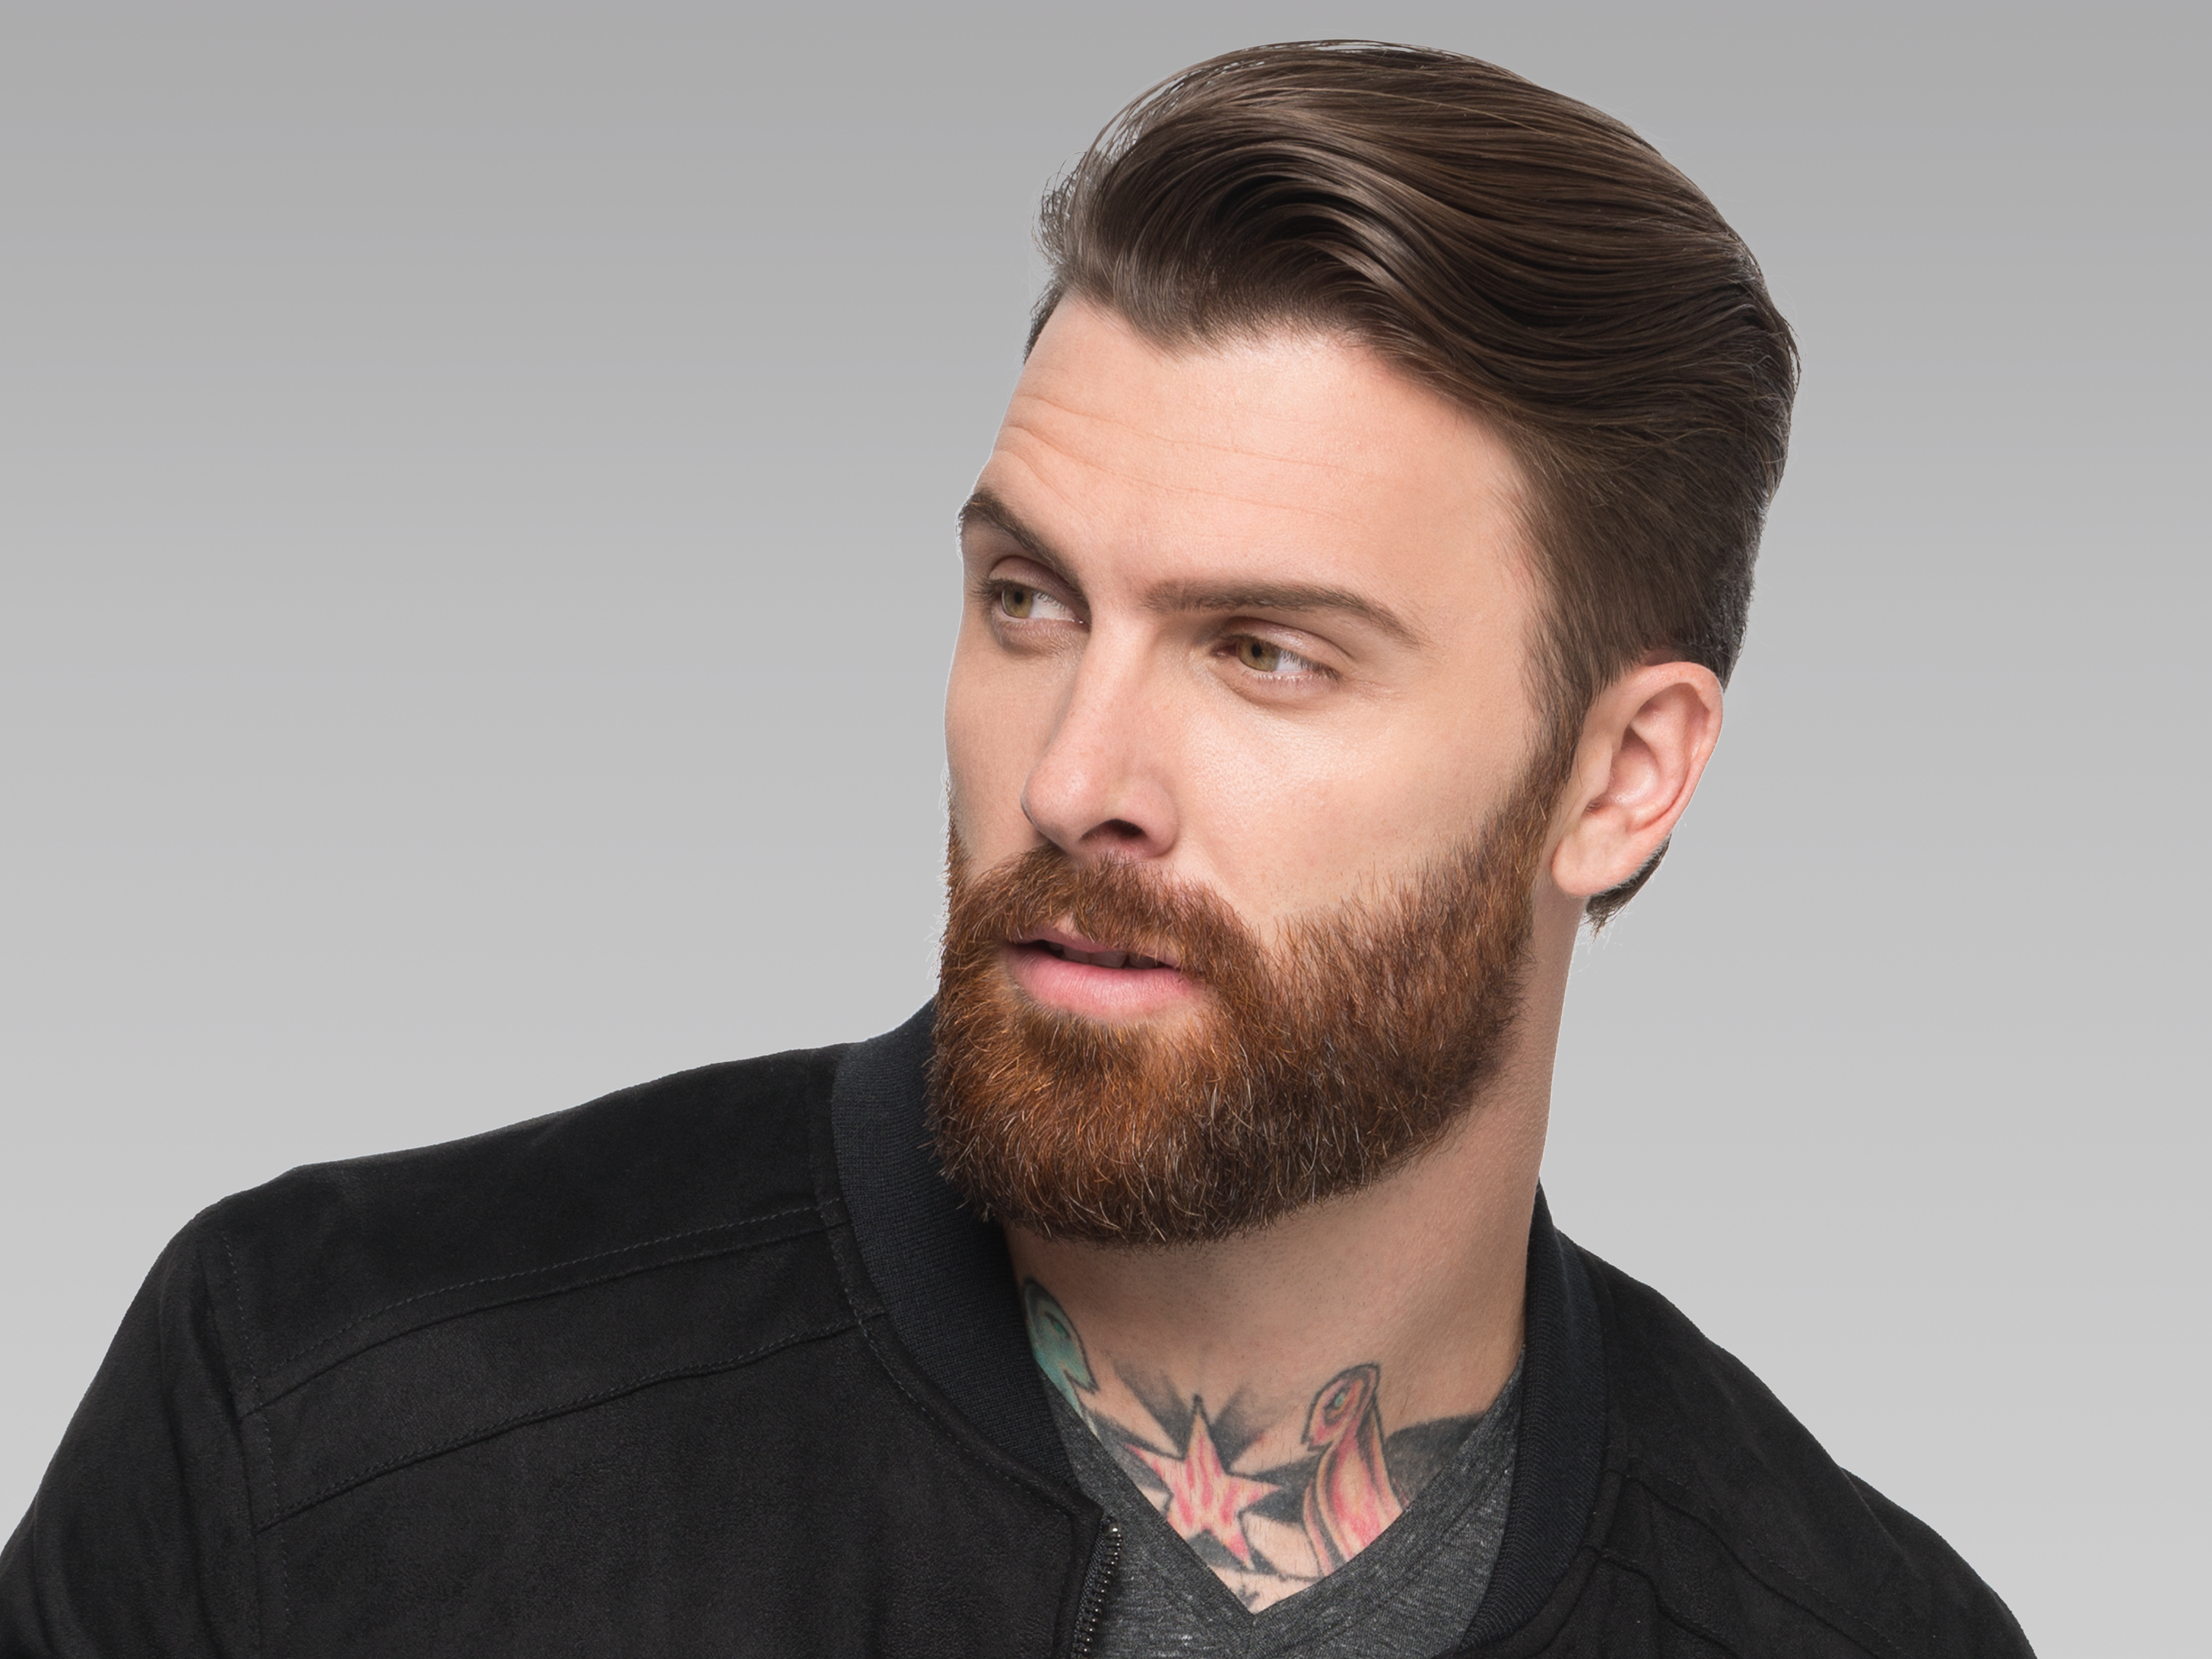 Hair Style For Guys: Tips For Becoming A Pomade Pro